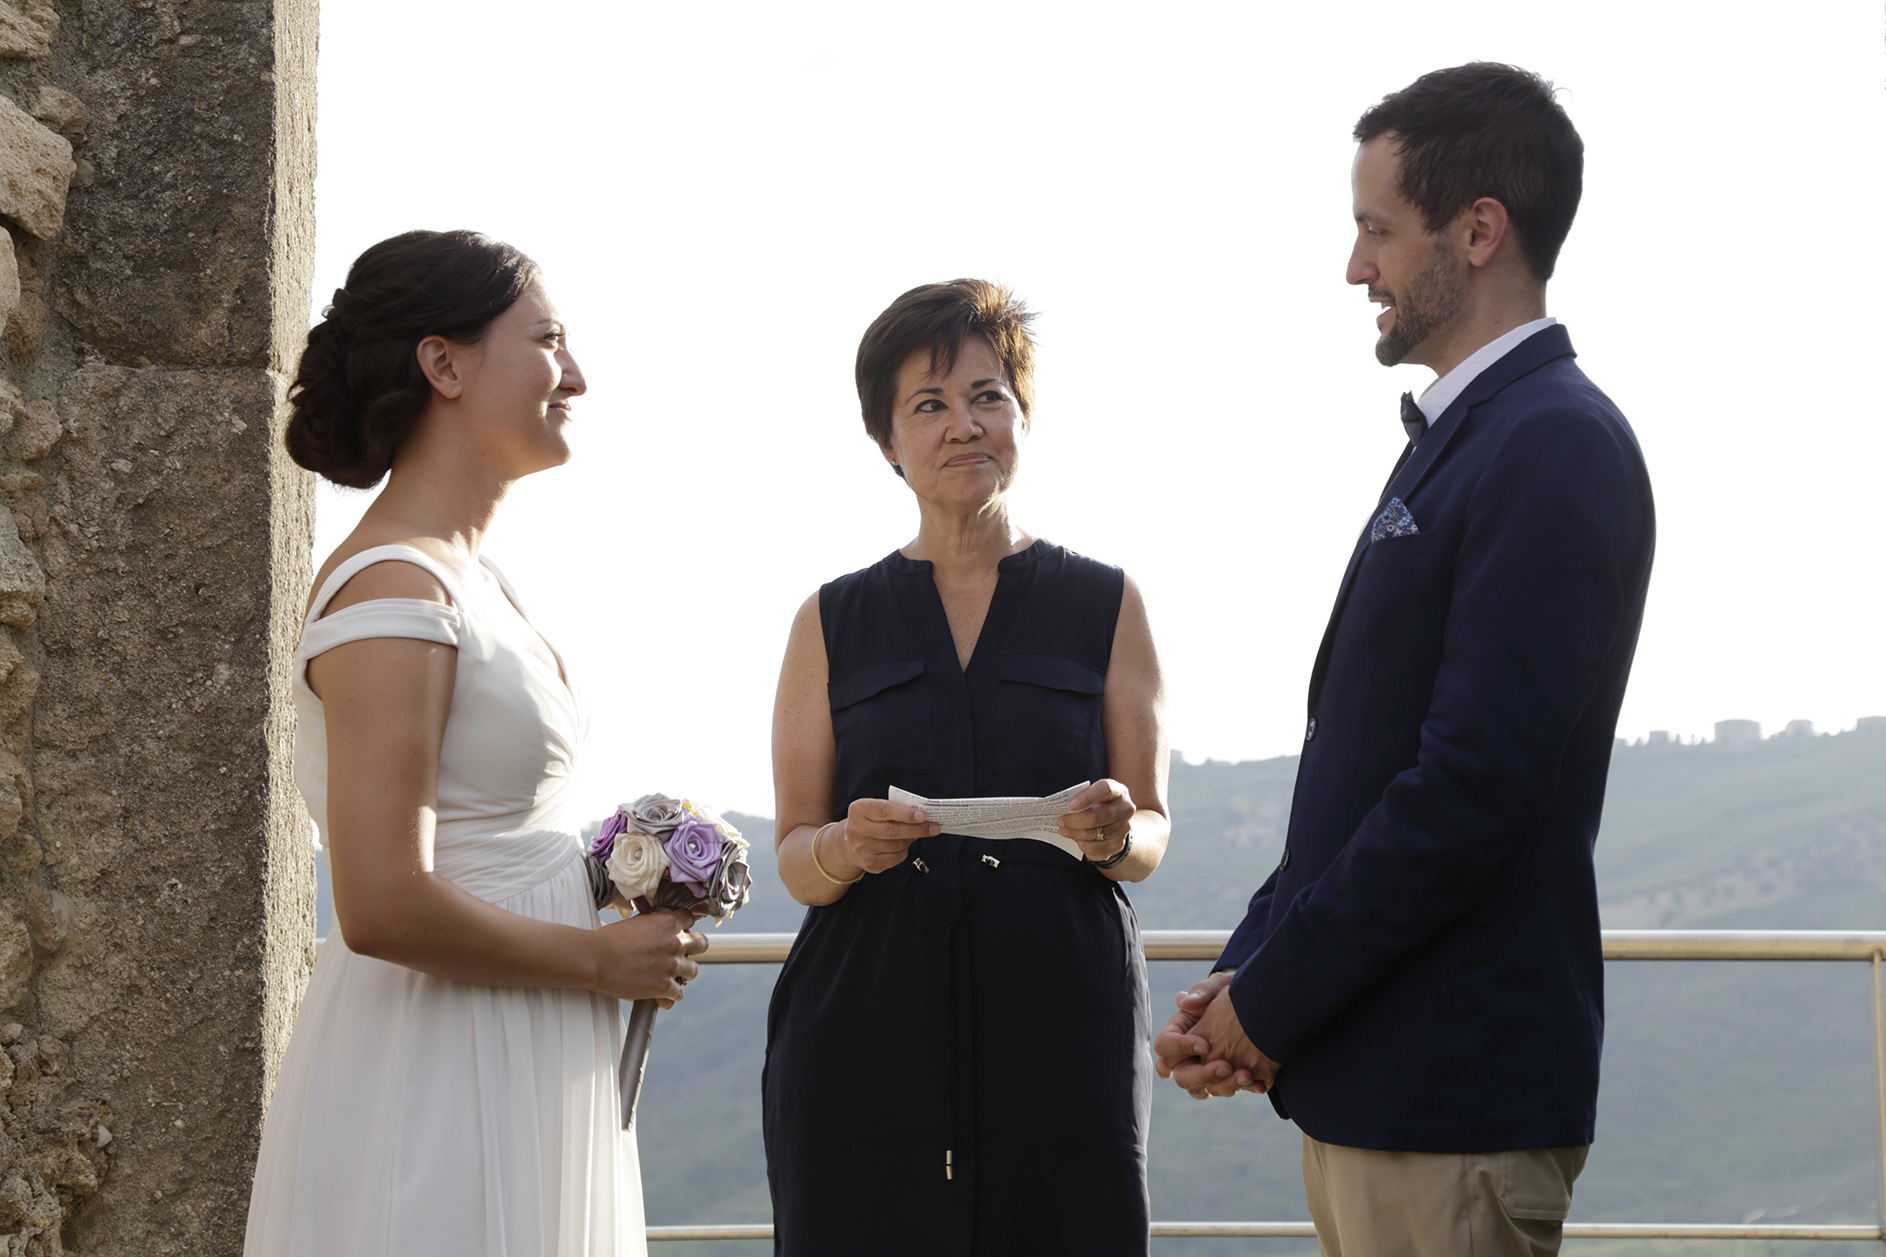 Cleto, Cosenza, Calabria, Italy Outdoor Elopement Ceremony Image | The couple exchanging vows